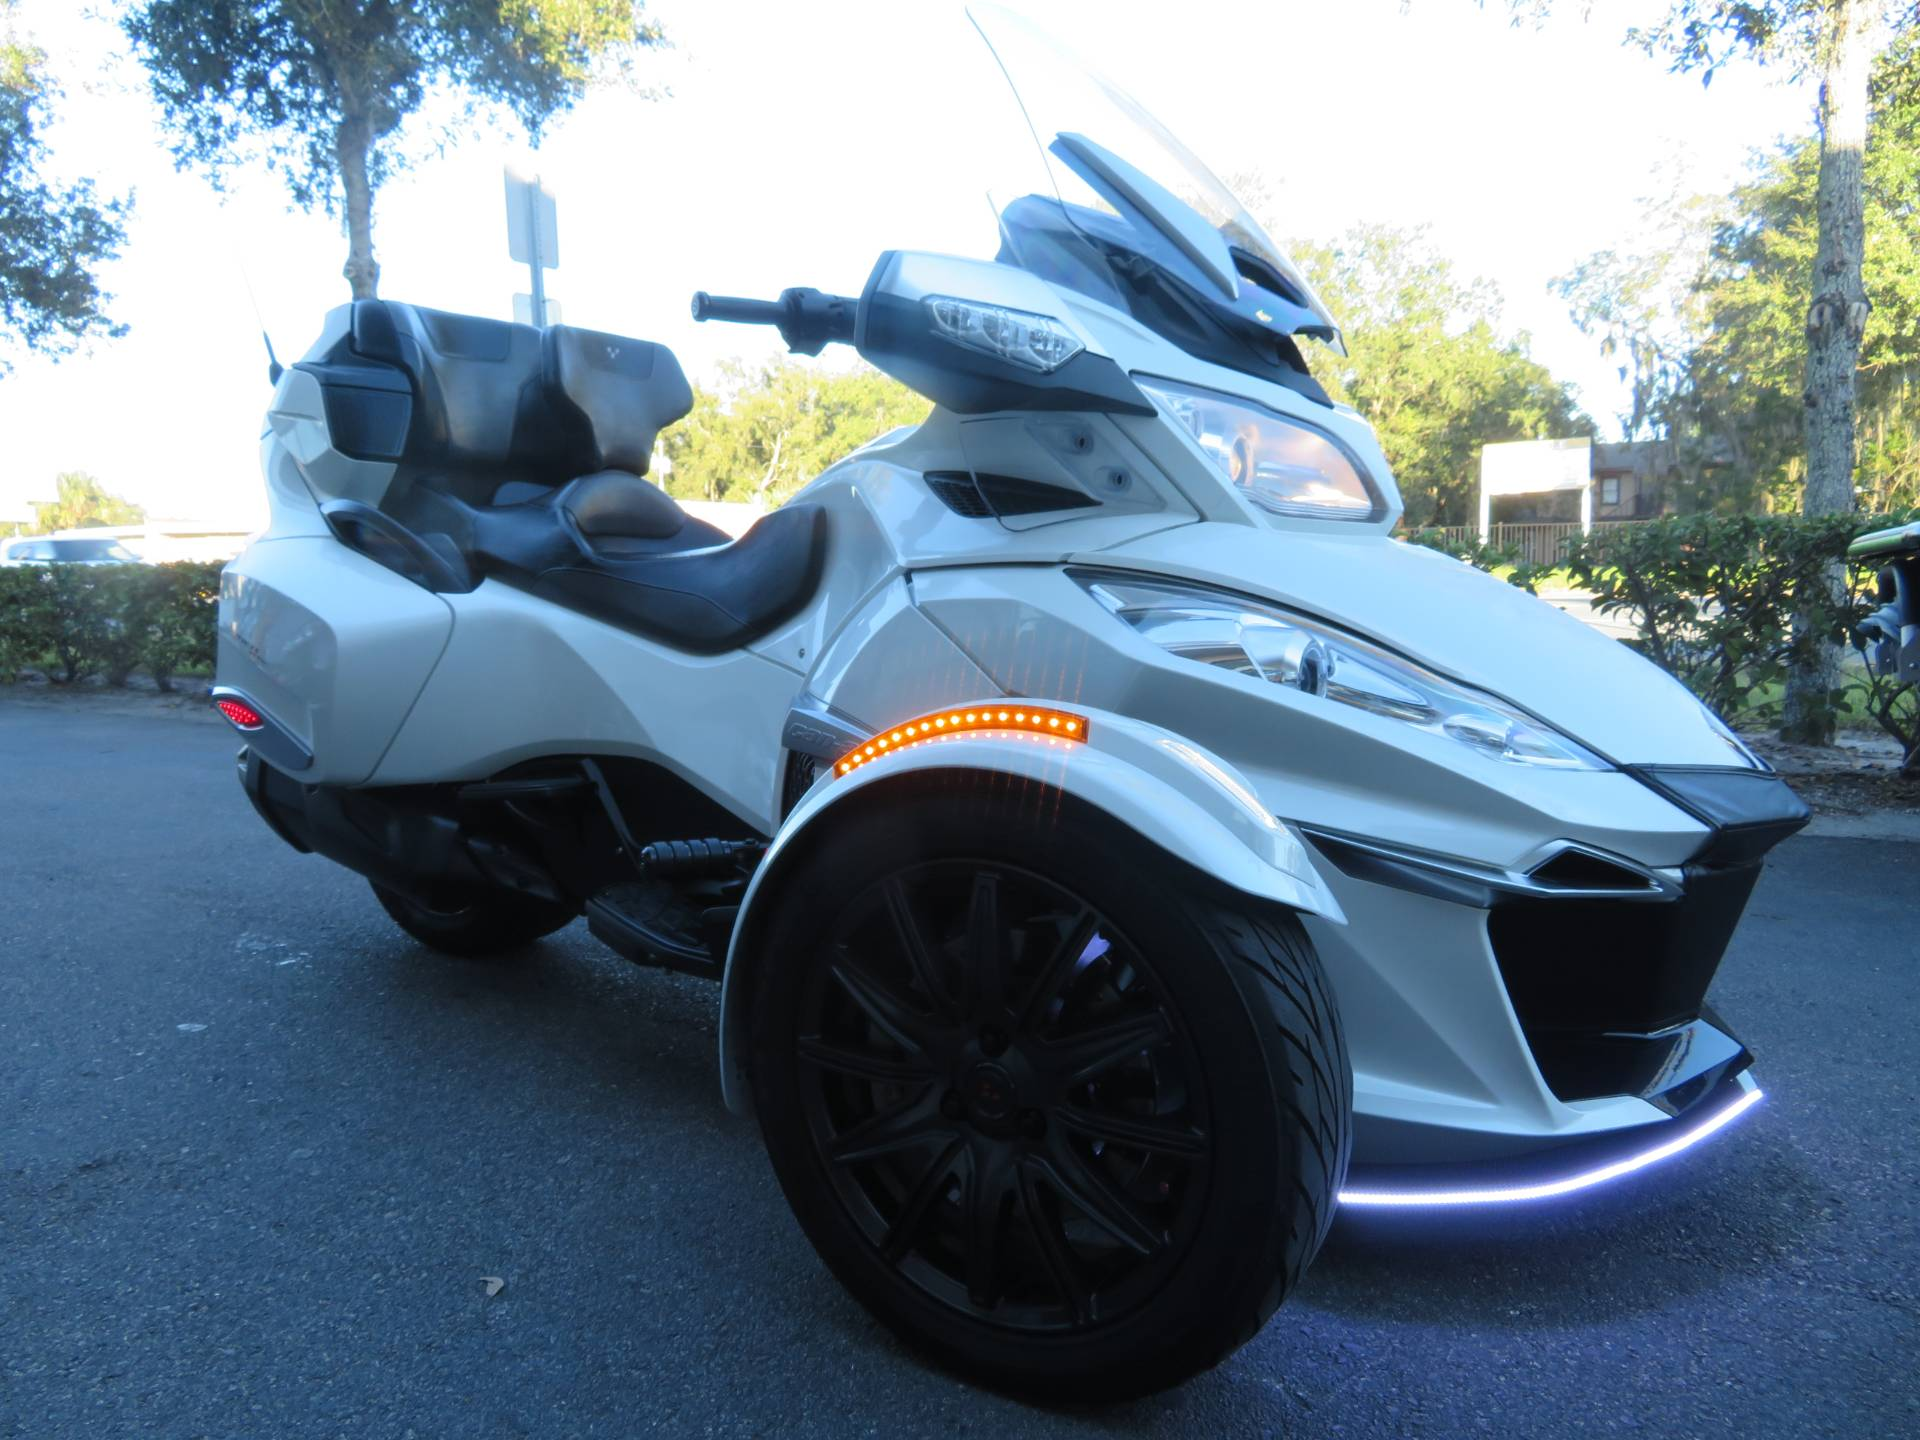 2016 Can-Am Spyder RT-S SE6 in Sanford, Florida - Photo 2